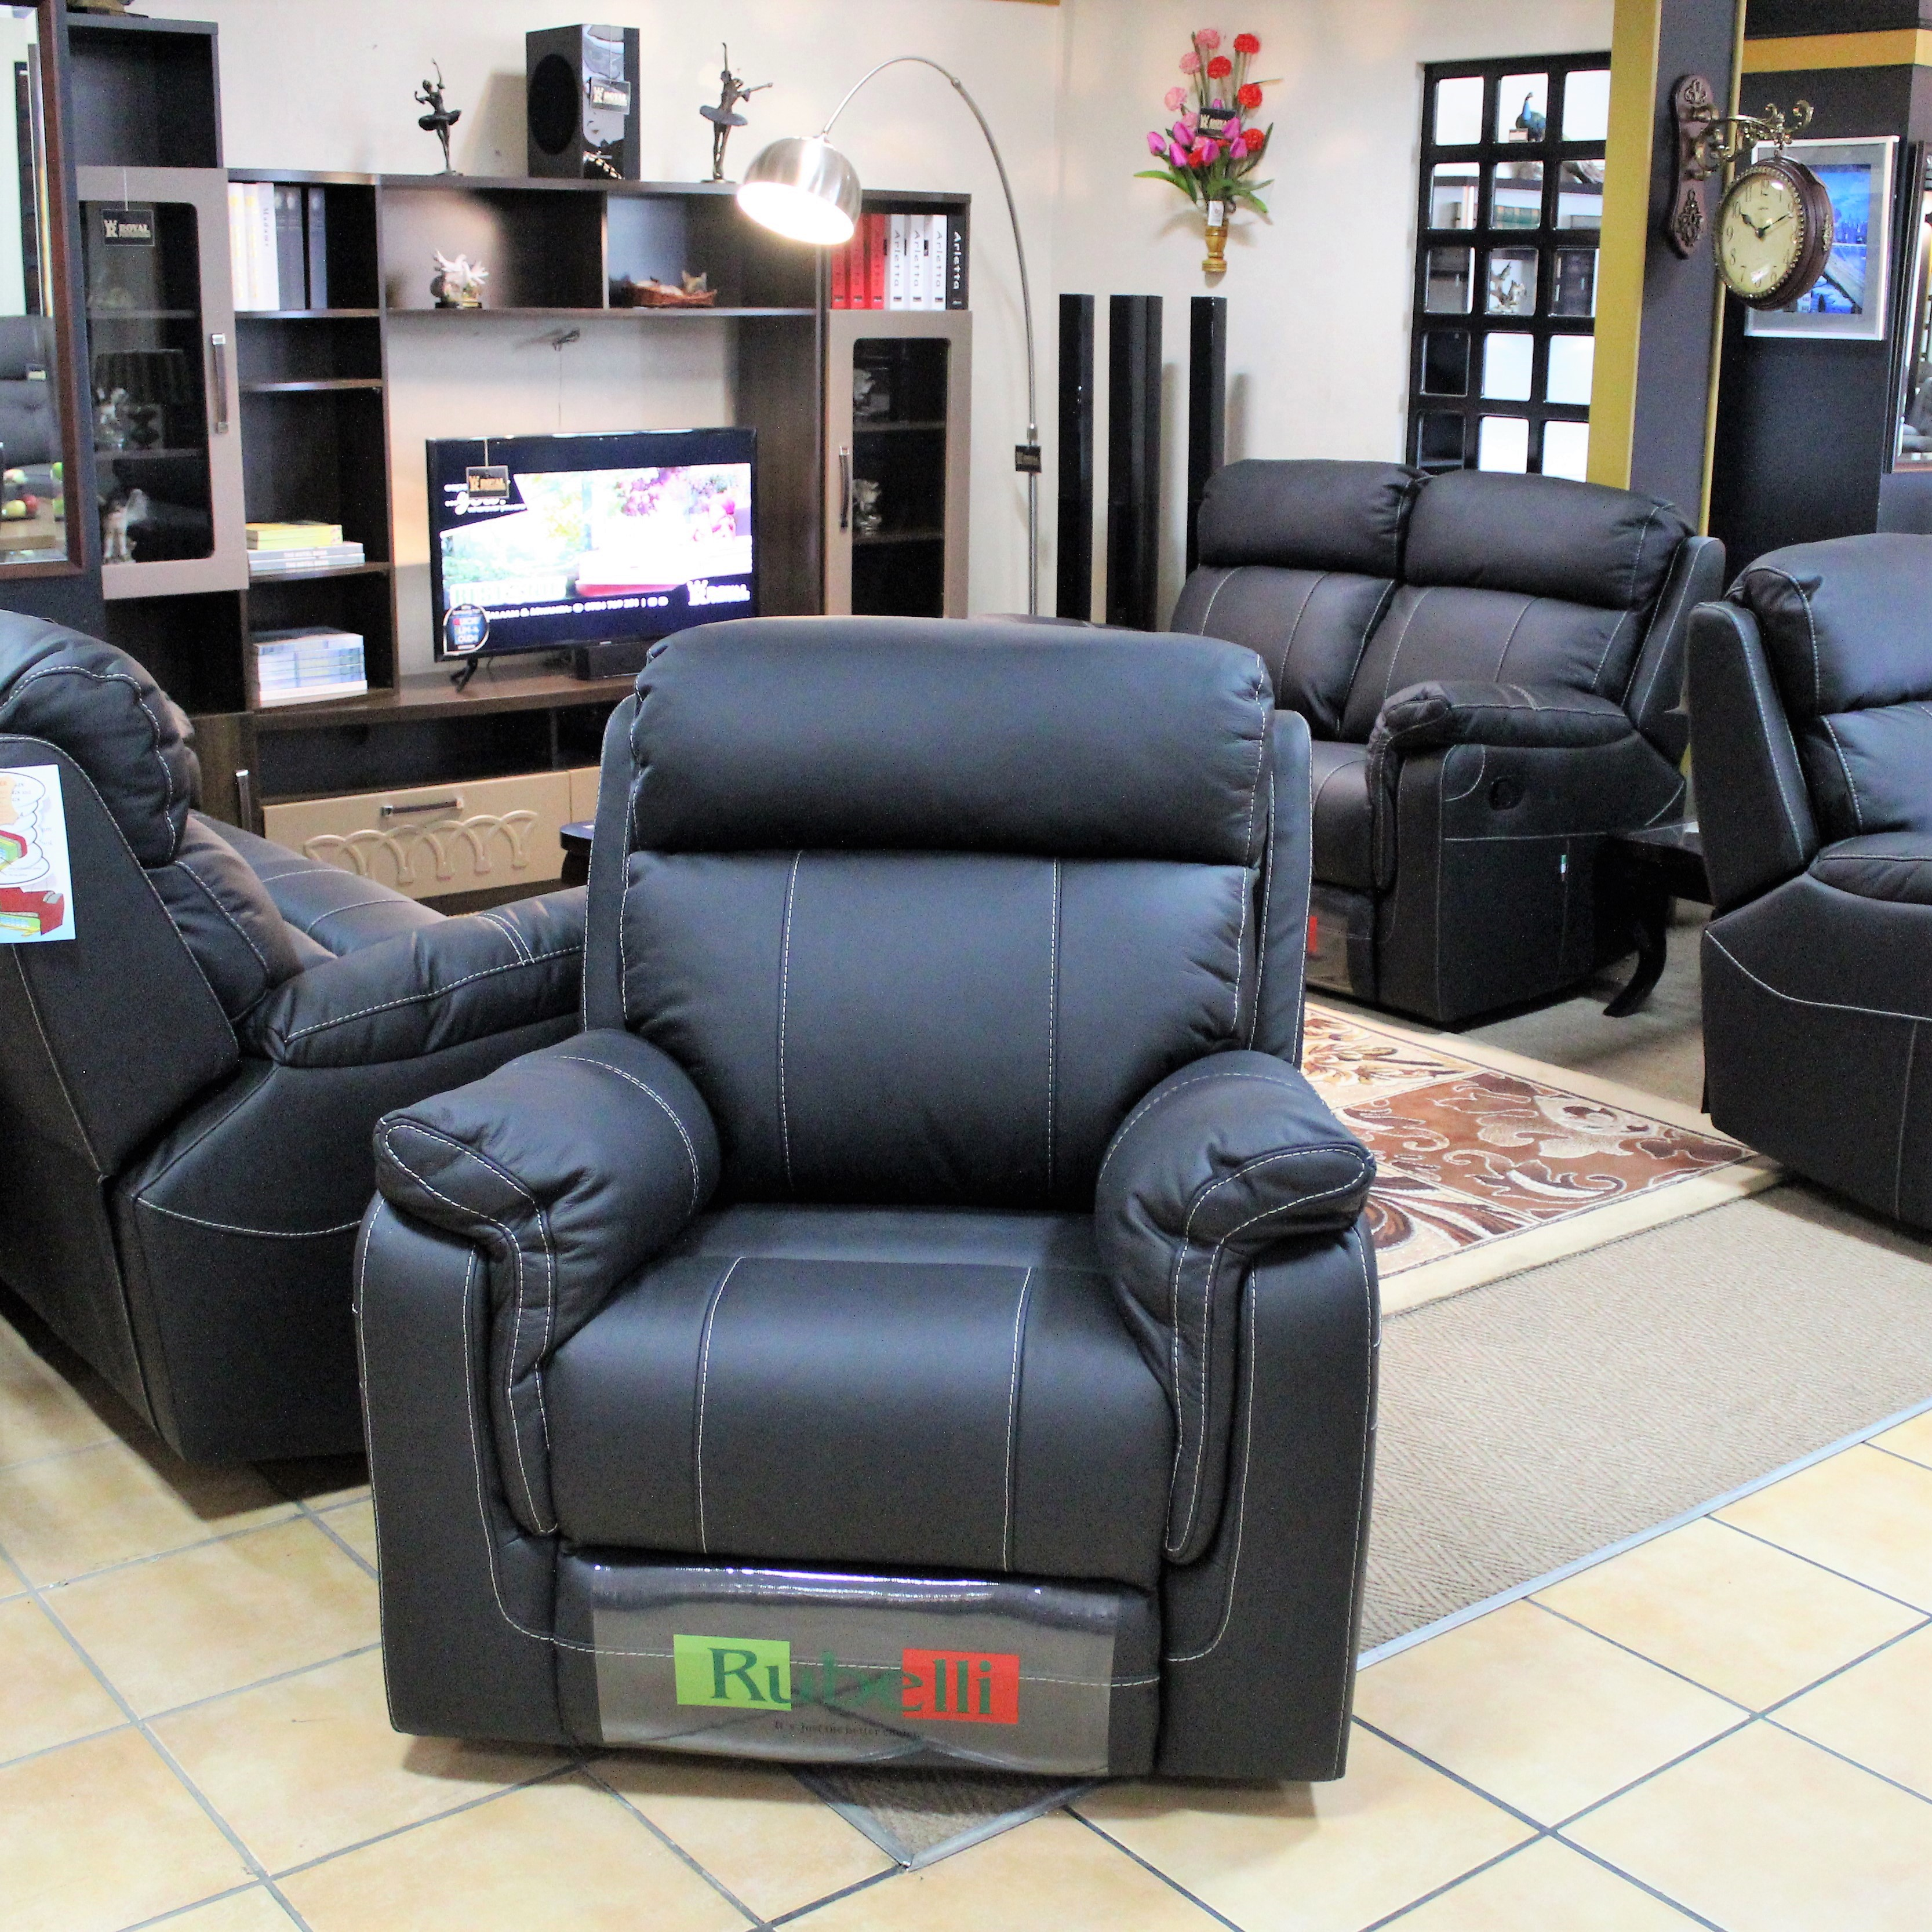 Out Of Stock Furniture: Royal Furnishers